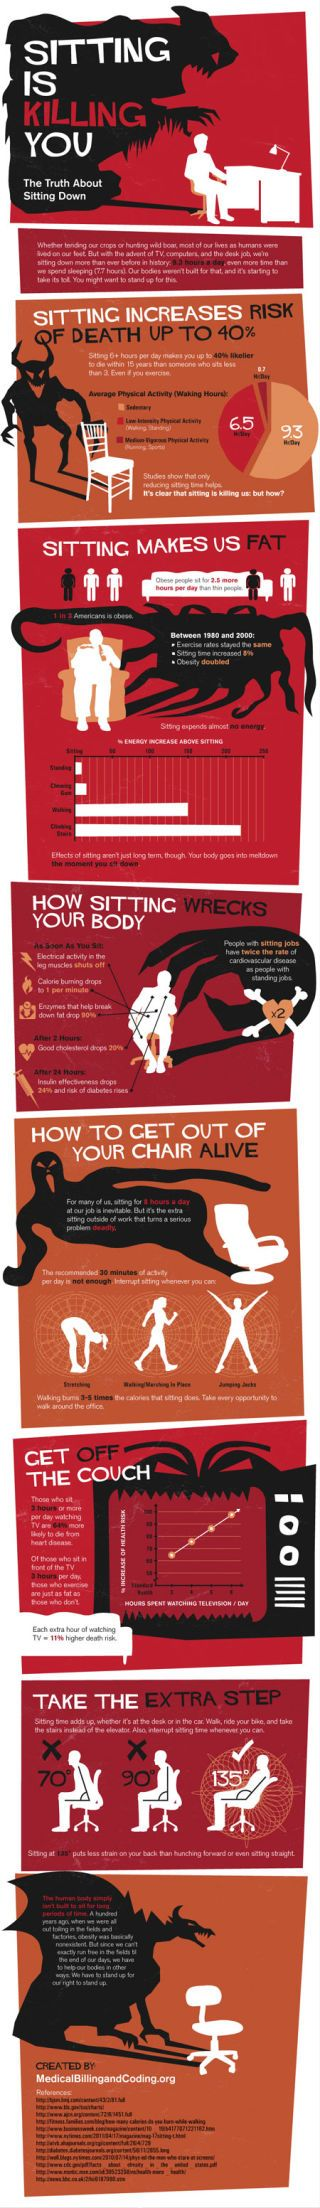 """The """"Sitting Is Killing You"""" Infographic Shows Just How Bad Prolonged Sitting Is"""